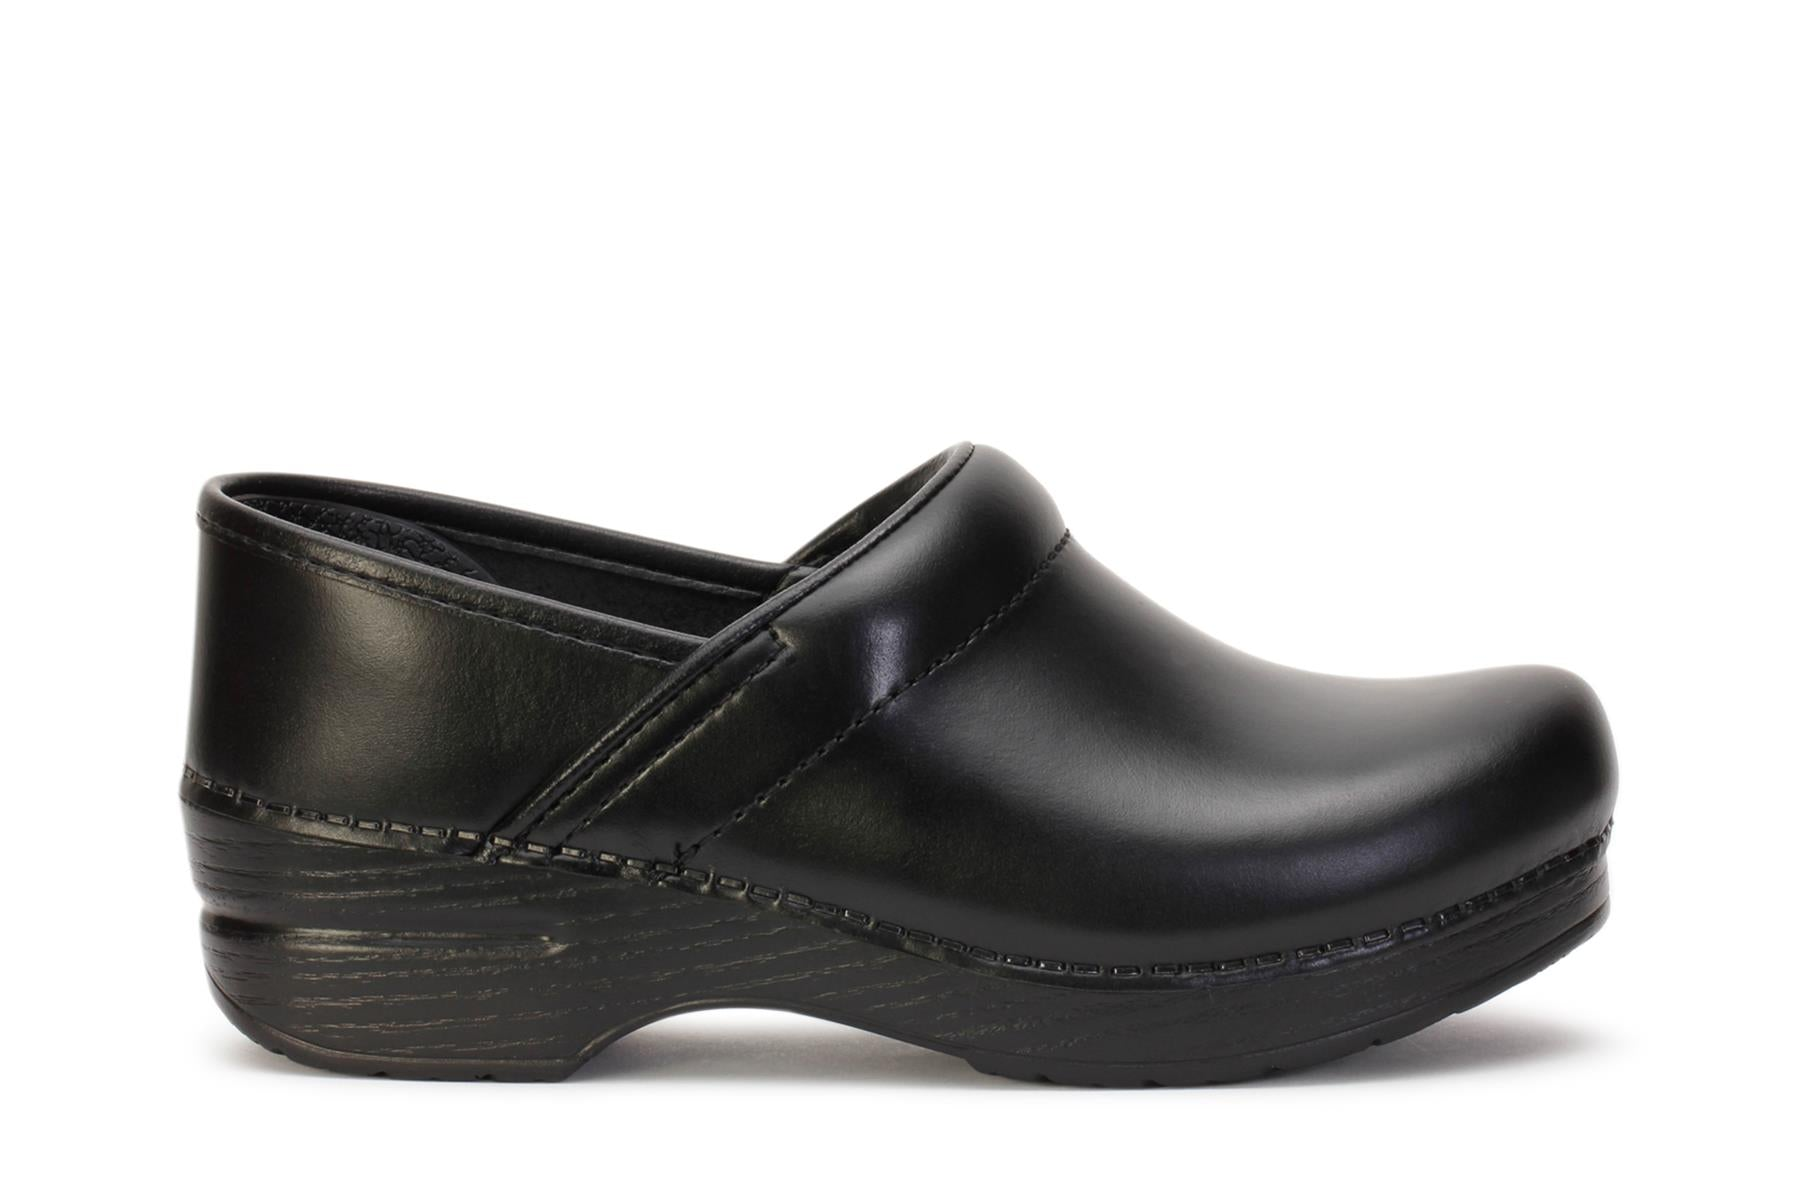 dansko-womens-clog-shoes-professional-black-cabrio-leather-806020202-main